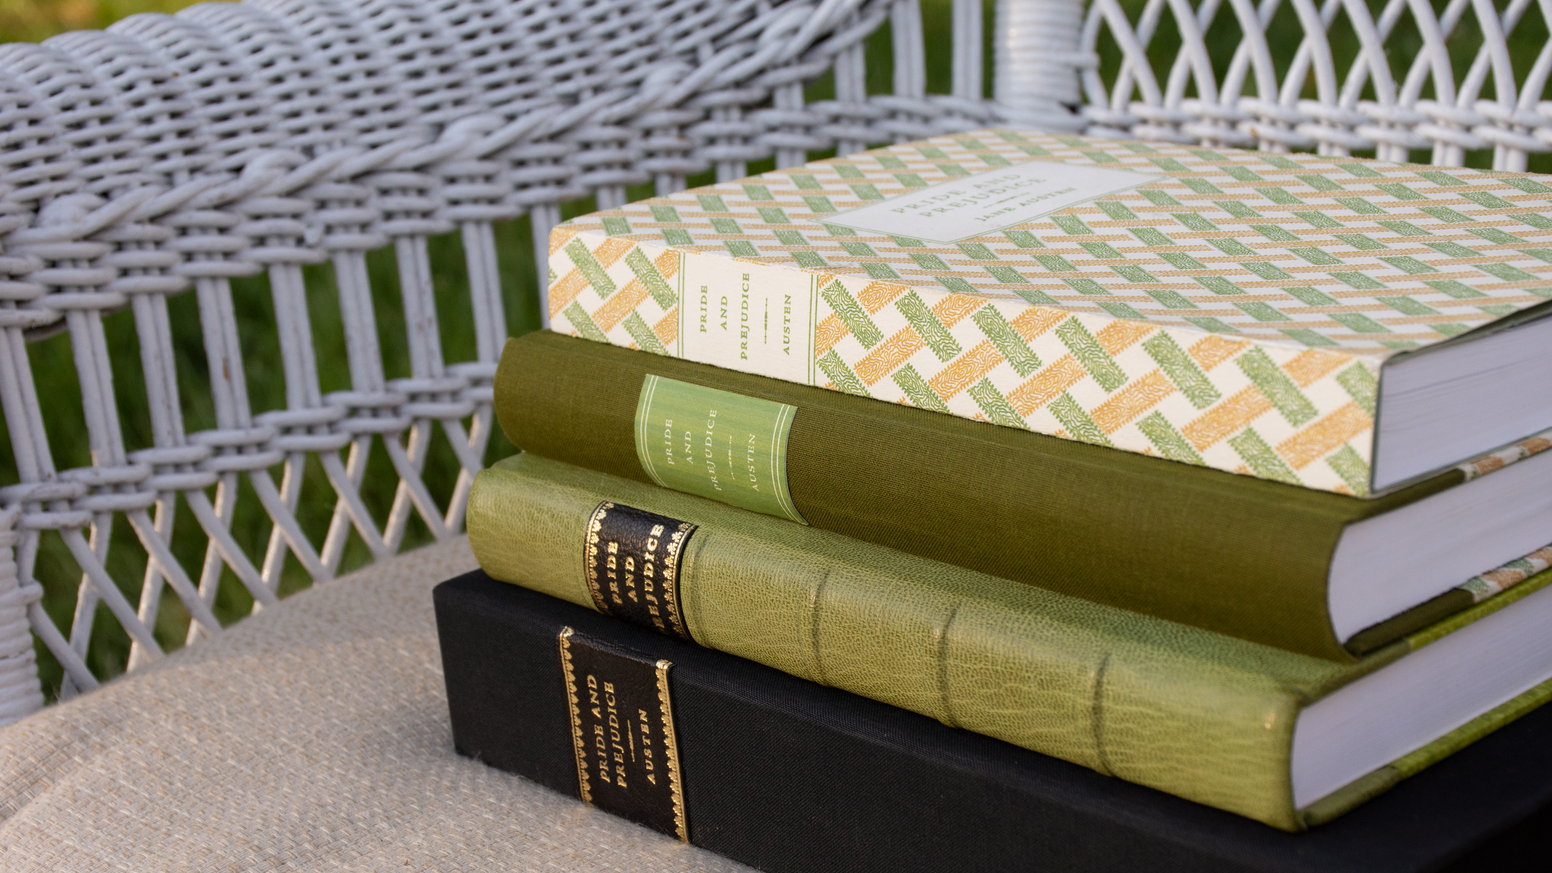 We are returning Jane Austen's masterpiece, PRIDE AND PREJUDICE, to its roots with this letterpress printed and hand-bound edition.